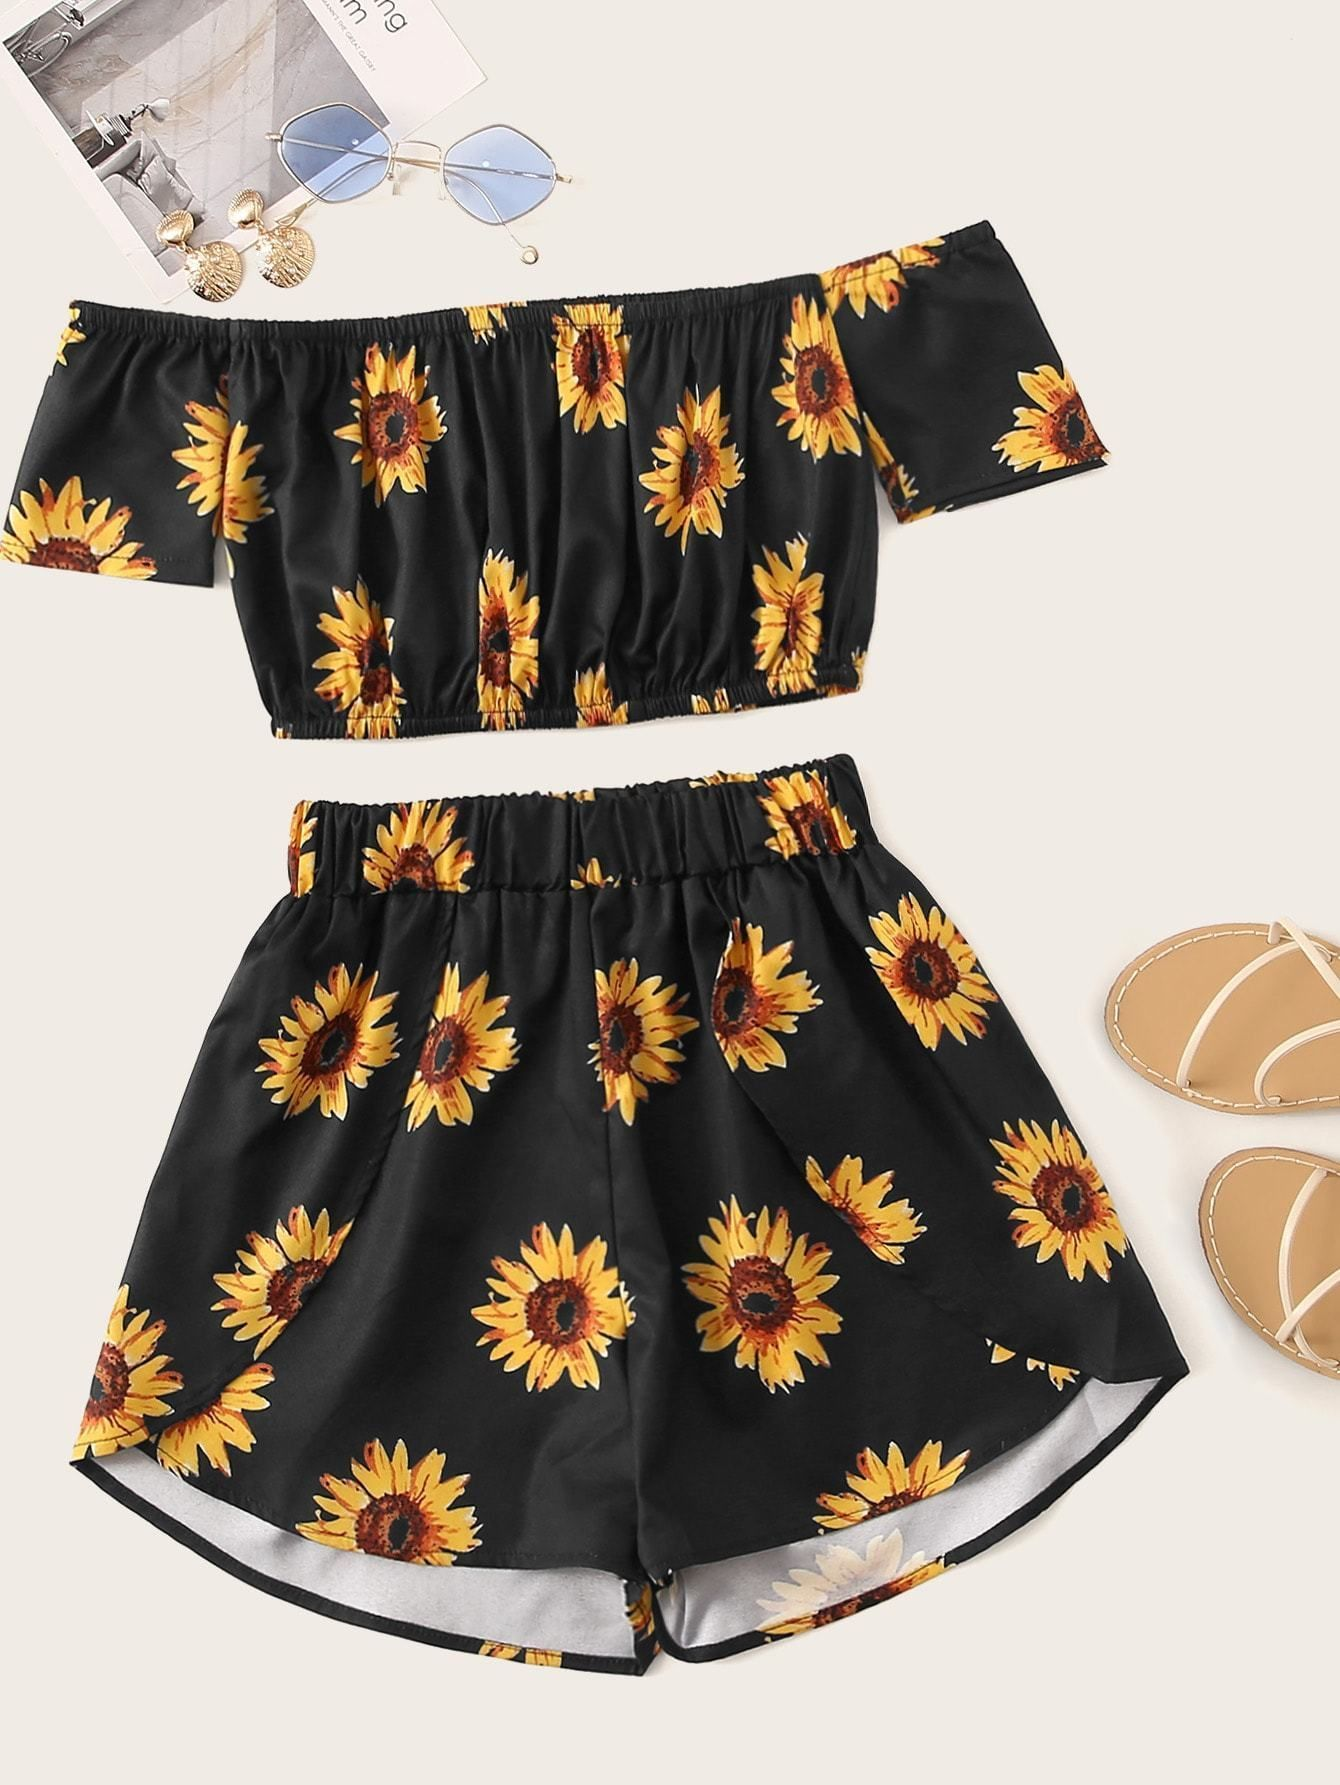 Black Floral Print Crop Top With Shorts Cs834613 Source By Cutespree Romwe Outfit In 2020 Tween Outfits Teenage Girl Outfits Girls Fashion Clothes